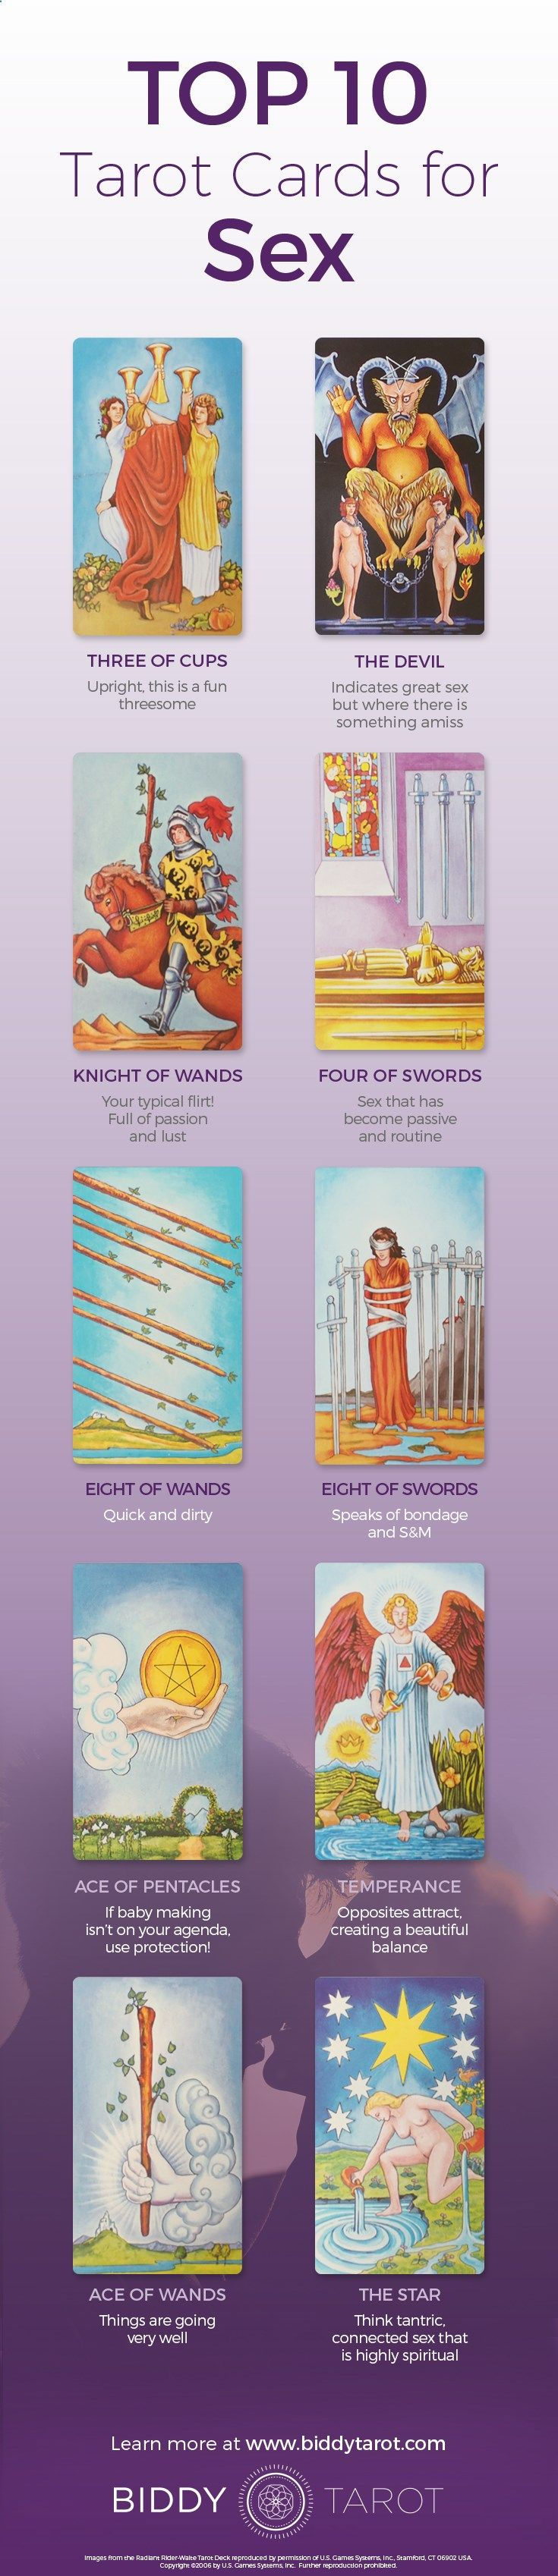 Things are about to heat up when these #Tarot cards appear. Expect things to get #fun and frisky. Download your free copy of my Top 10 Tarot Cards for love, finances, career, life purpose and so much more at www.biddytarot.co... It's my gift to you!